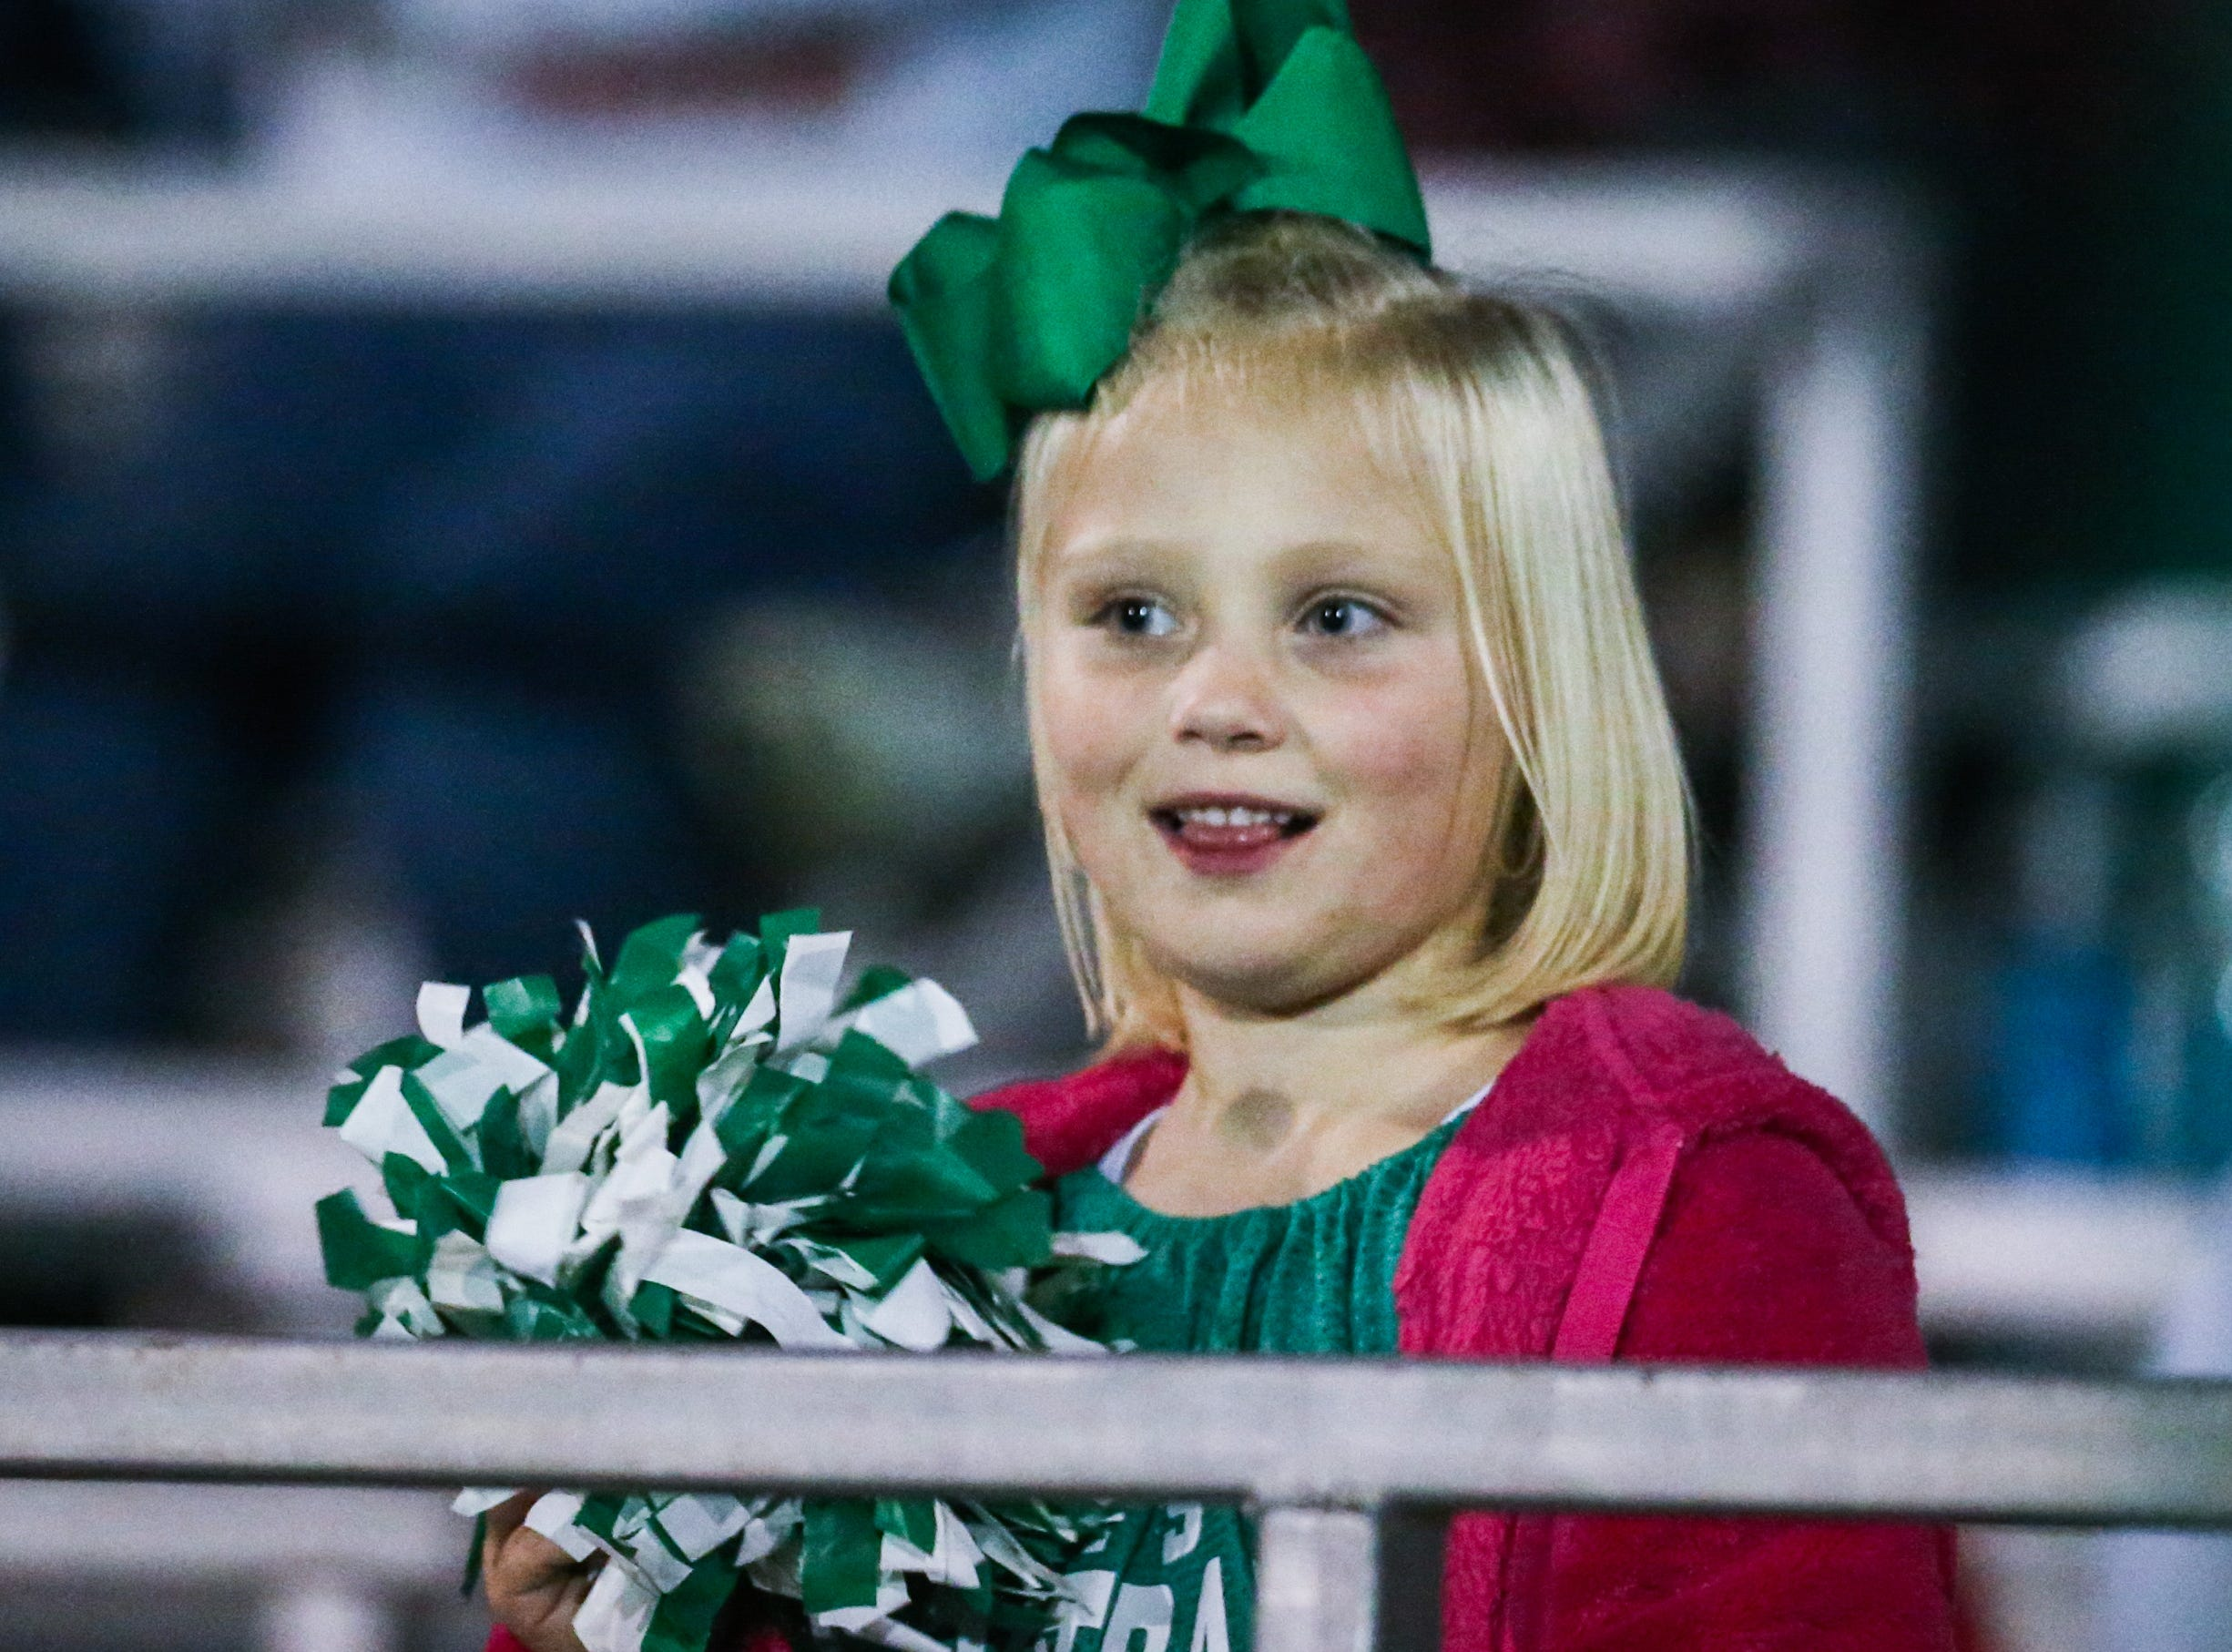 A young fan dances along with Wall cheerleaders during the game against Breckenridge Friday, Nov. 2, 2018, at Wall.